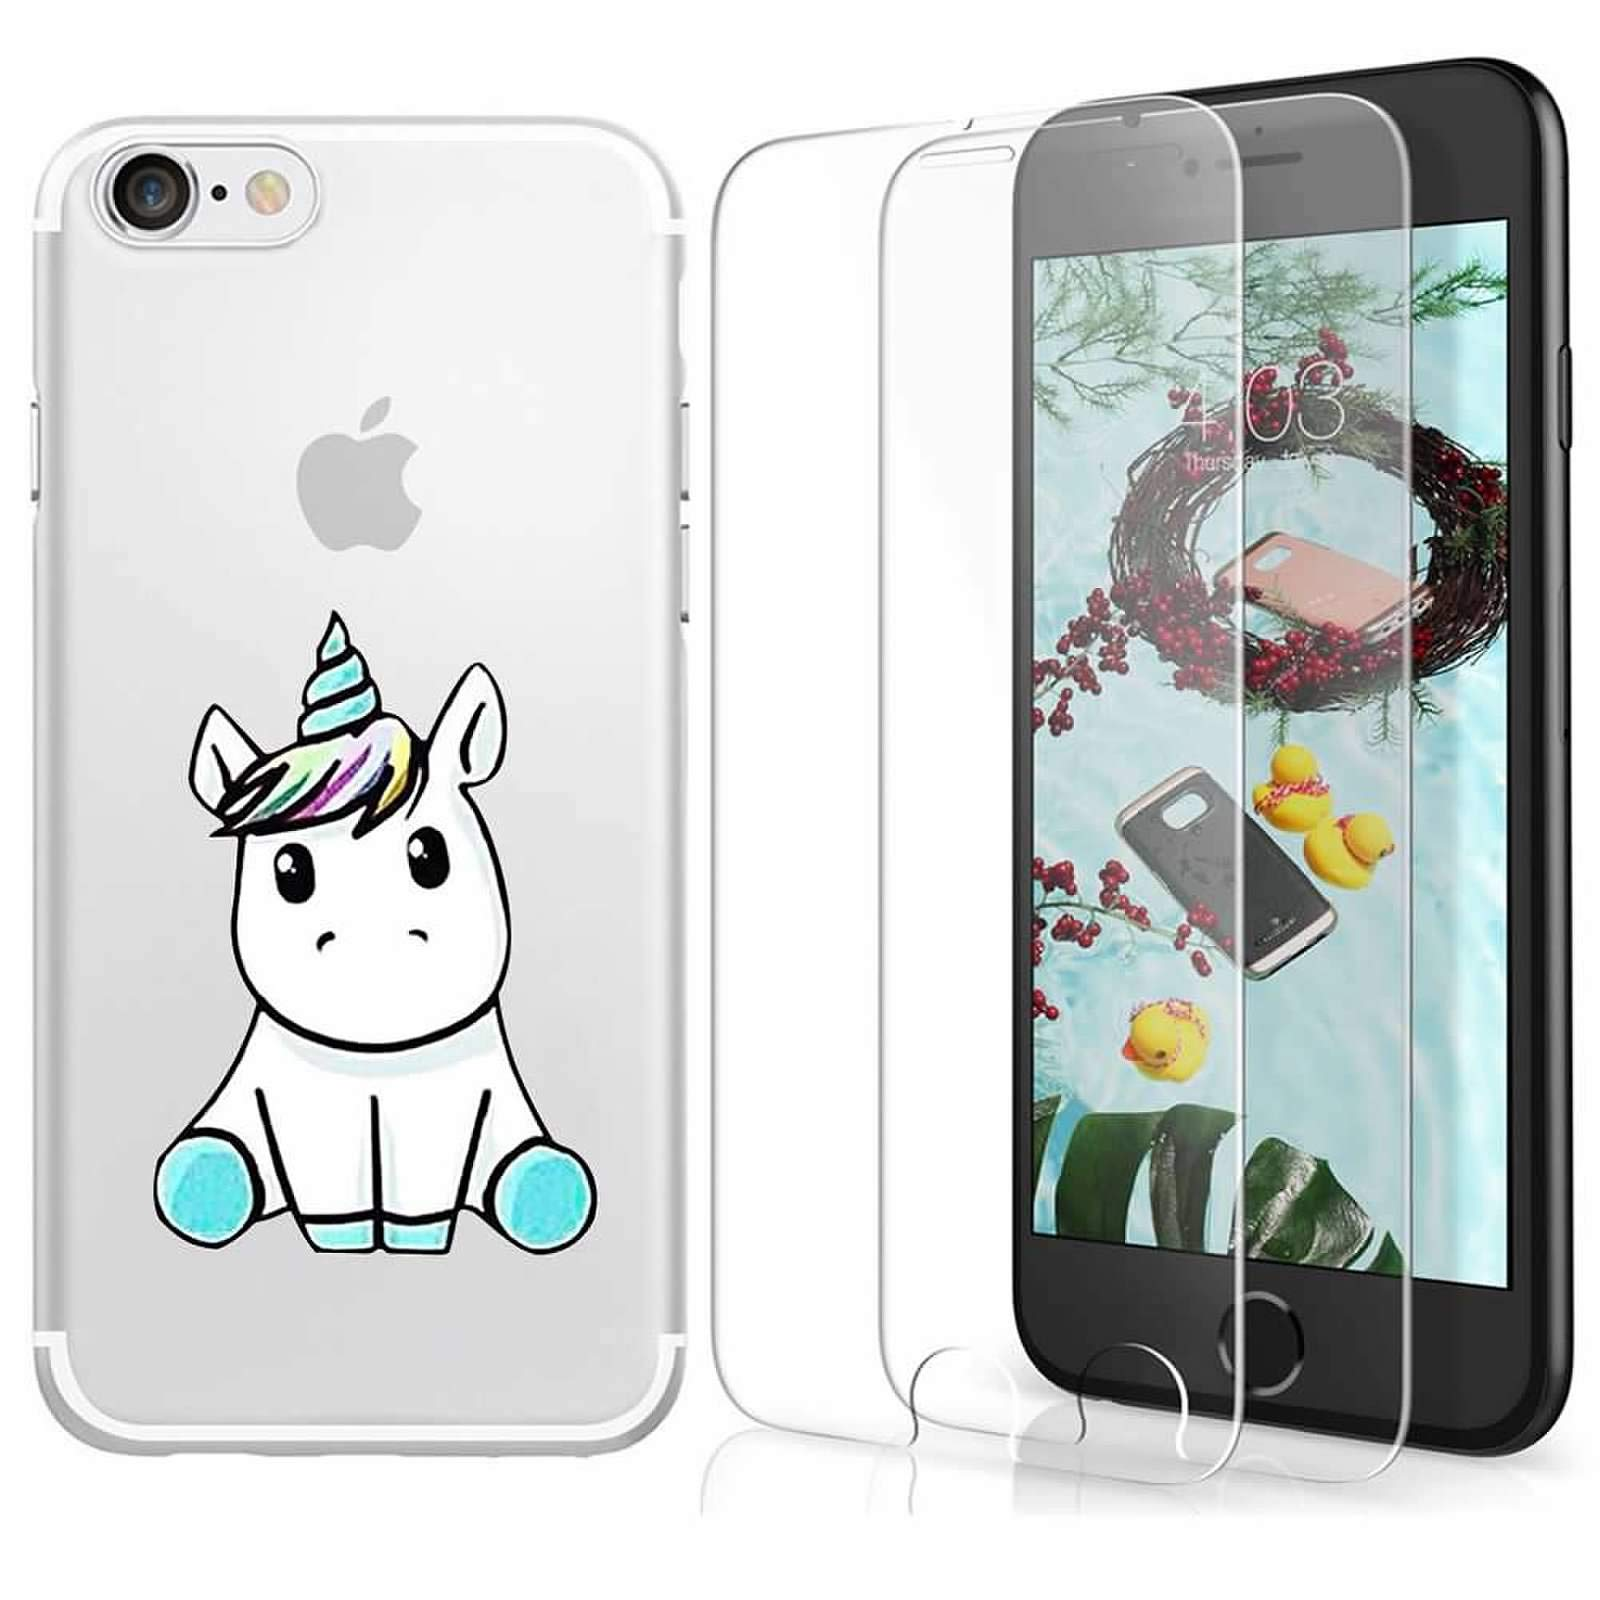 iPhone 6 Plus / 6s Plus Case with 2 Pack Glass Screen Protector Phone Case for Men Women Girls Clear Soft TPU with Protective Bumper Cover Case for iPhone 6 Plus / 6s Plus-Unicorn